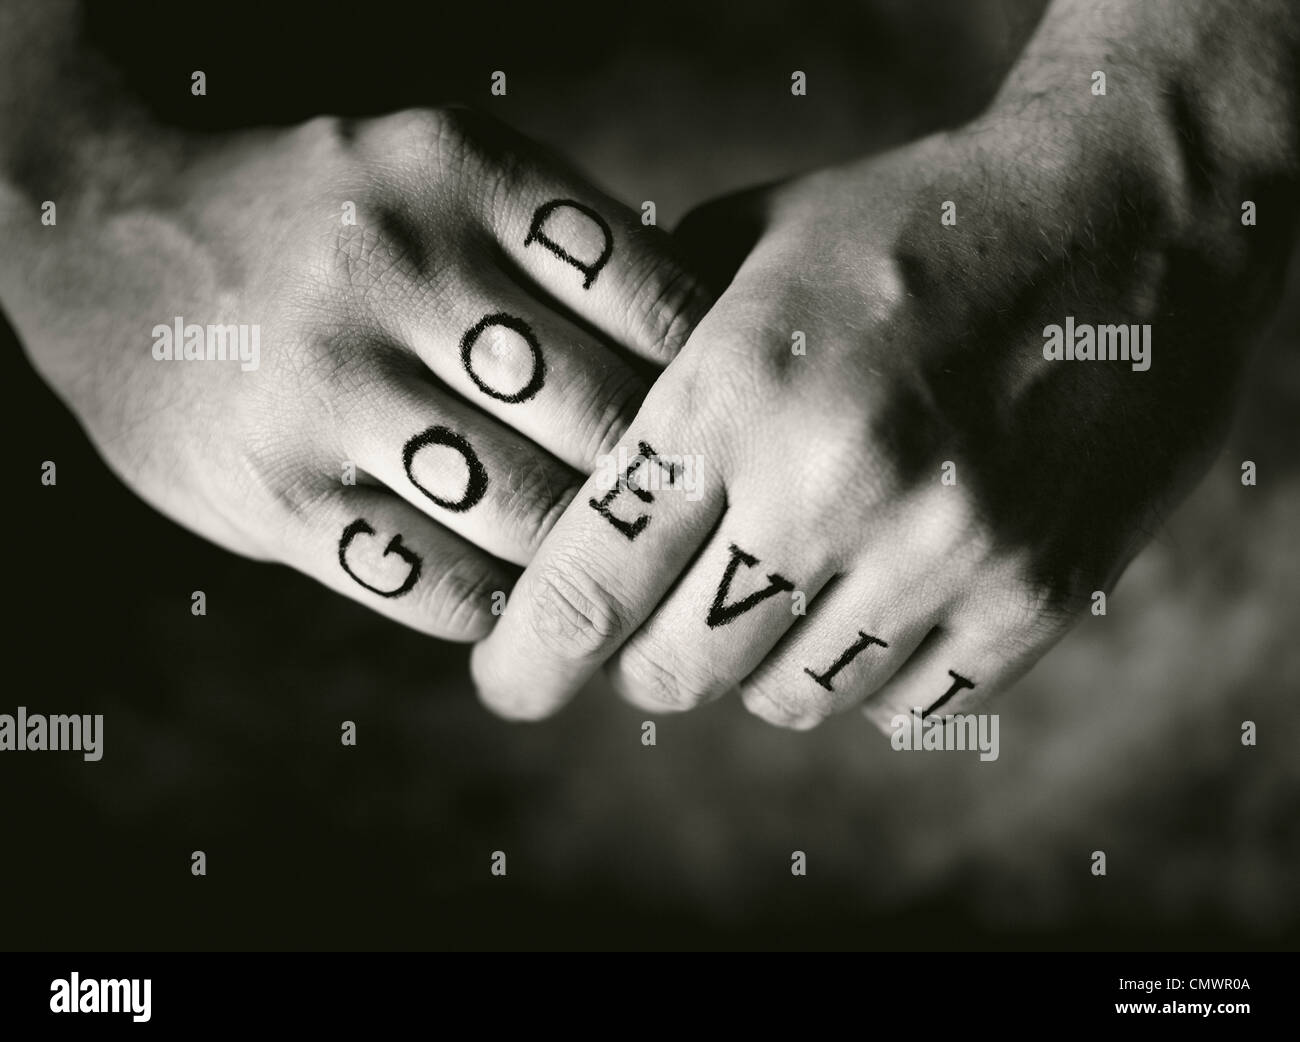 Man With Good And Evil Fake Tattoos On His Fingers Stock Photo